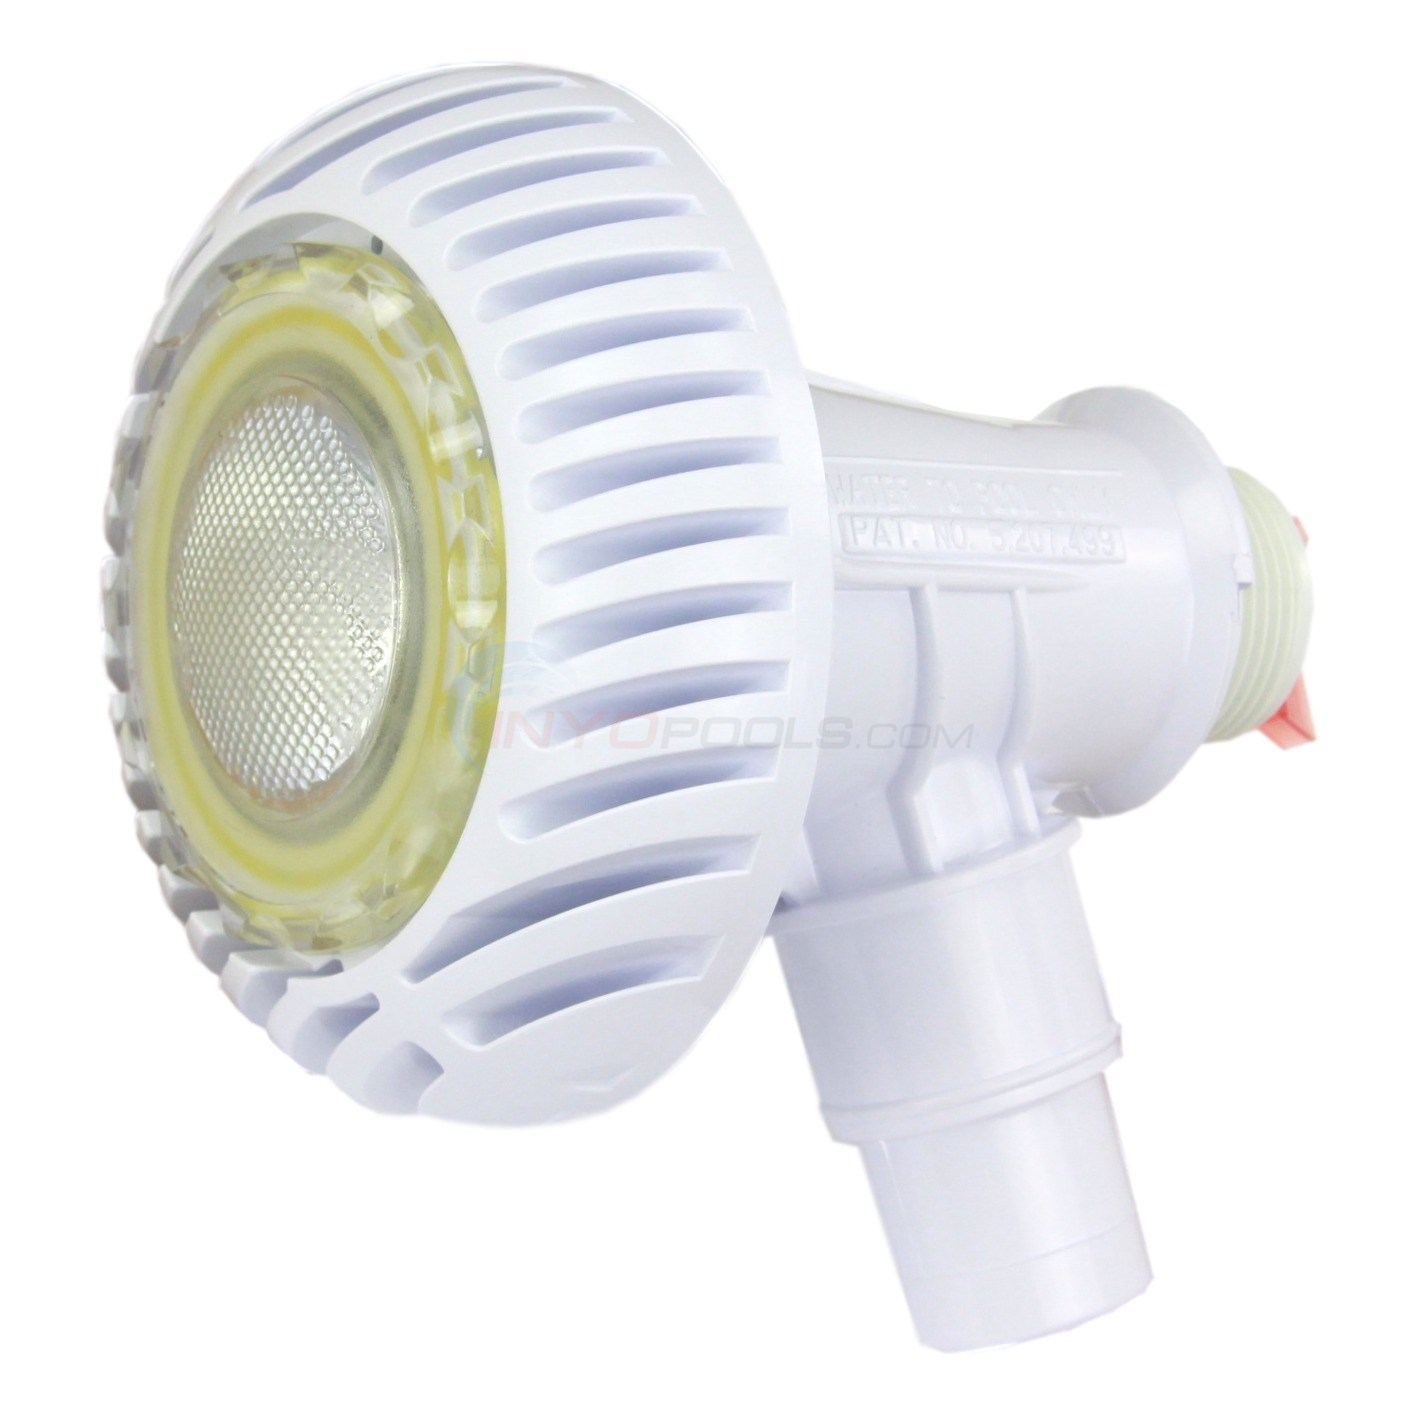 Pentair Aqualuminator Above Ground Pool Light - 98600000